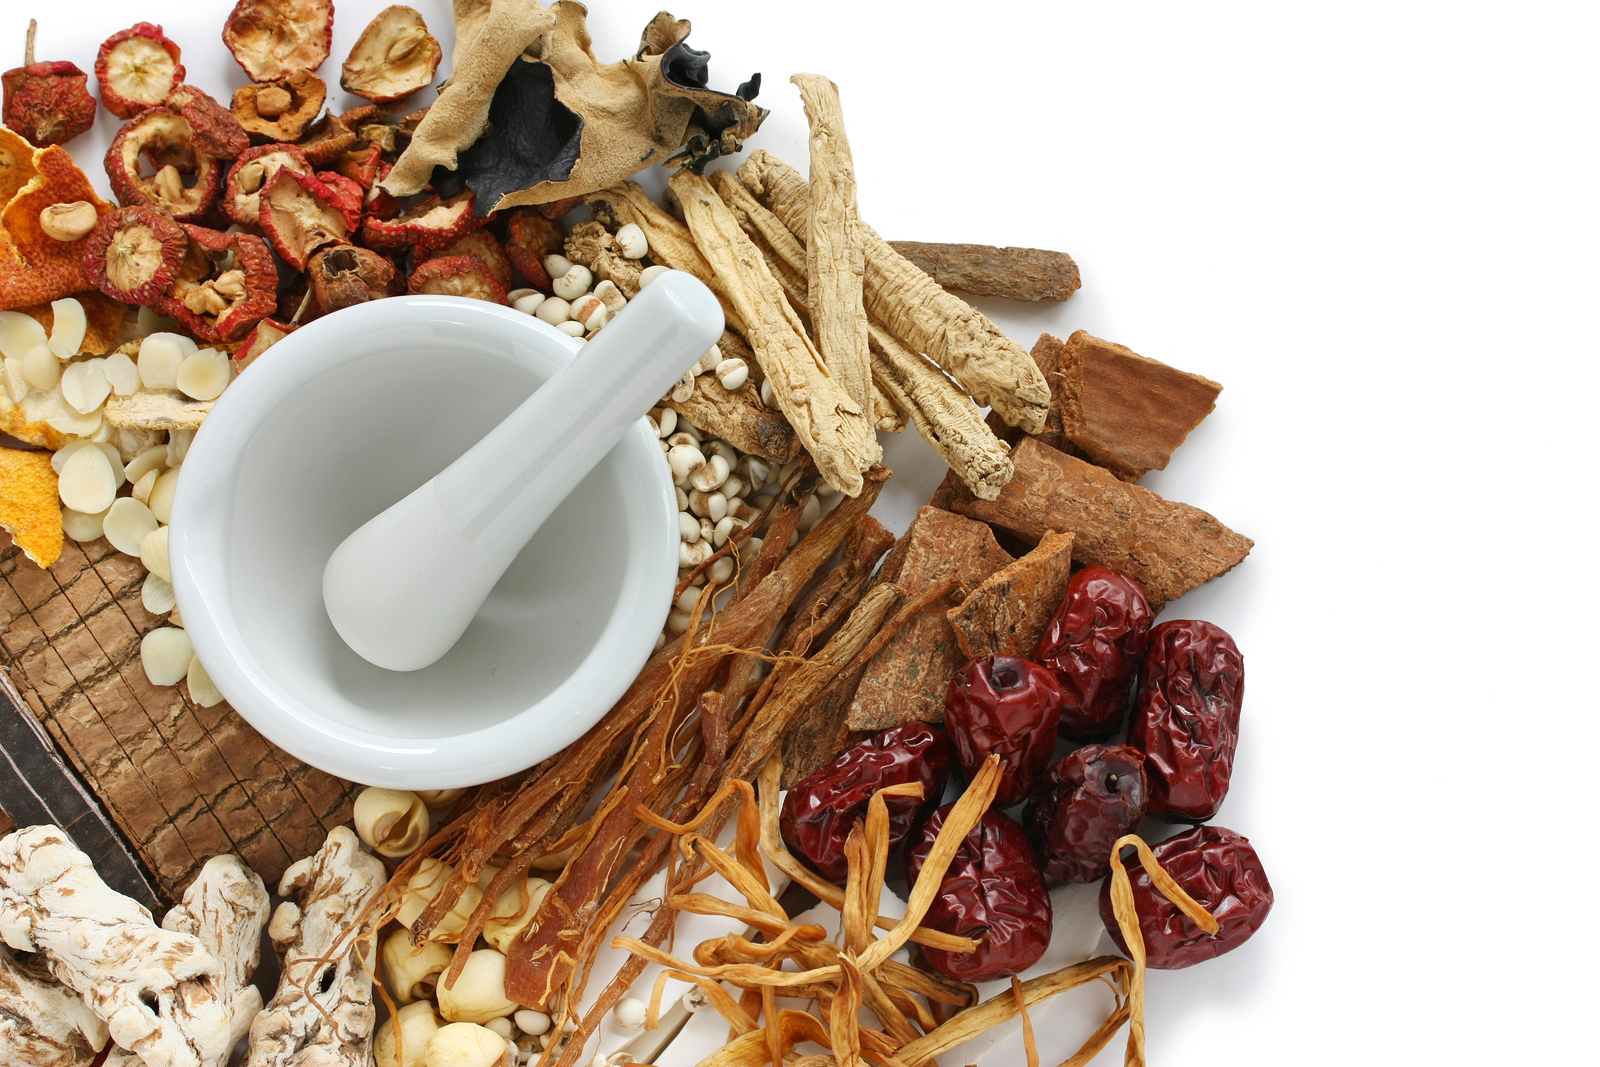 Herbal Remedies for Abdominal Pain